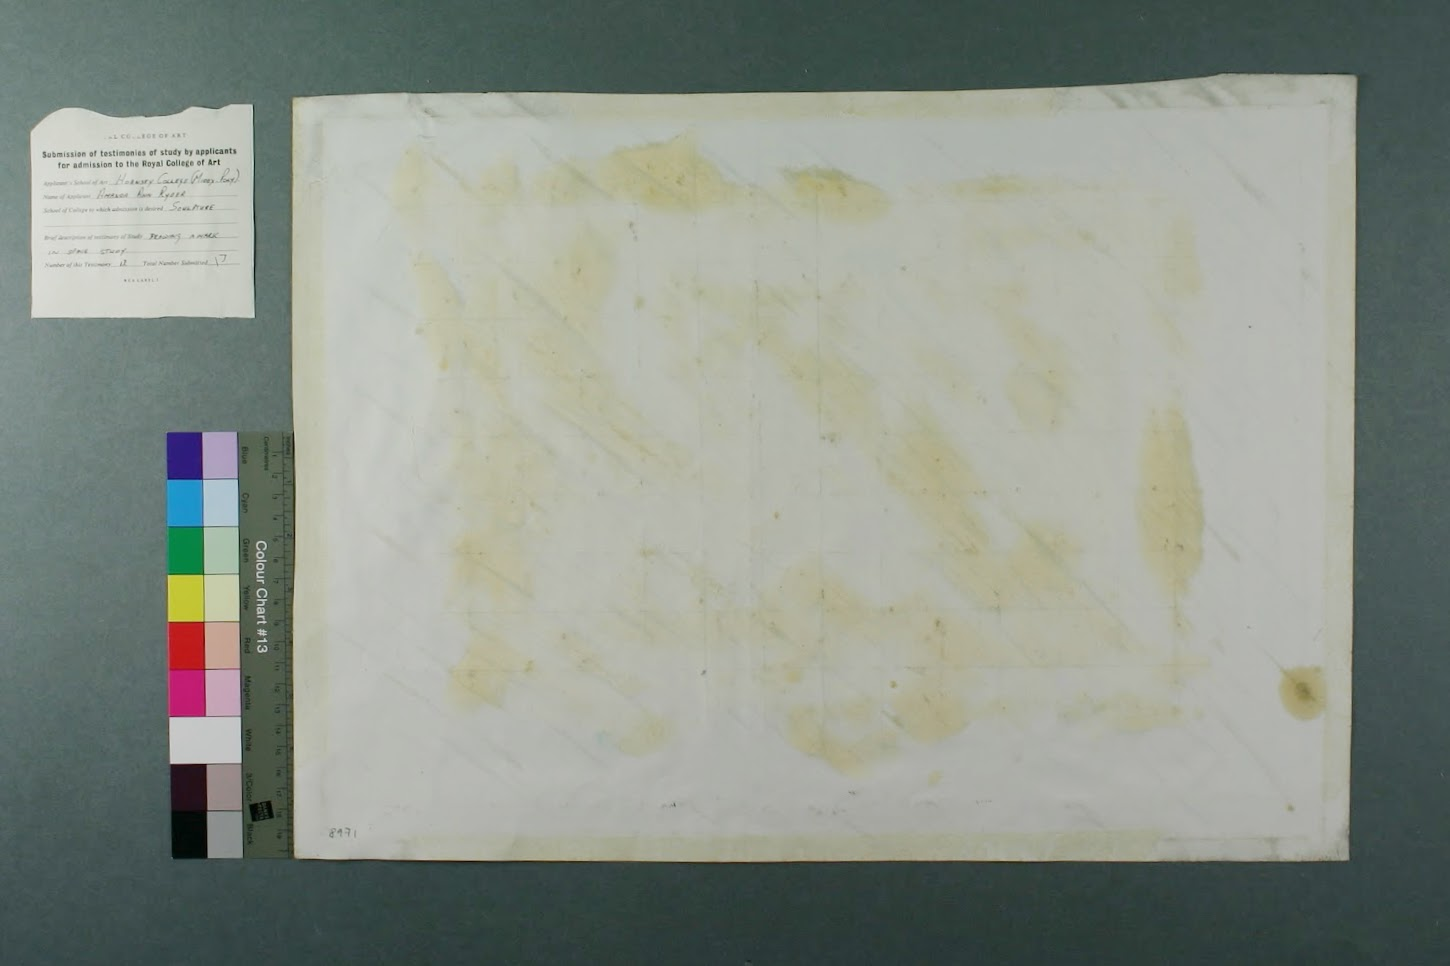 After treatment: verso of print.